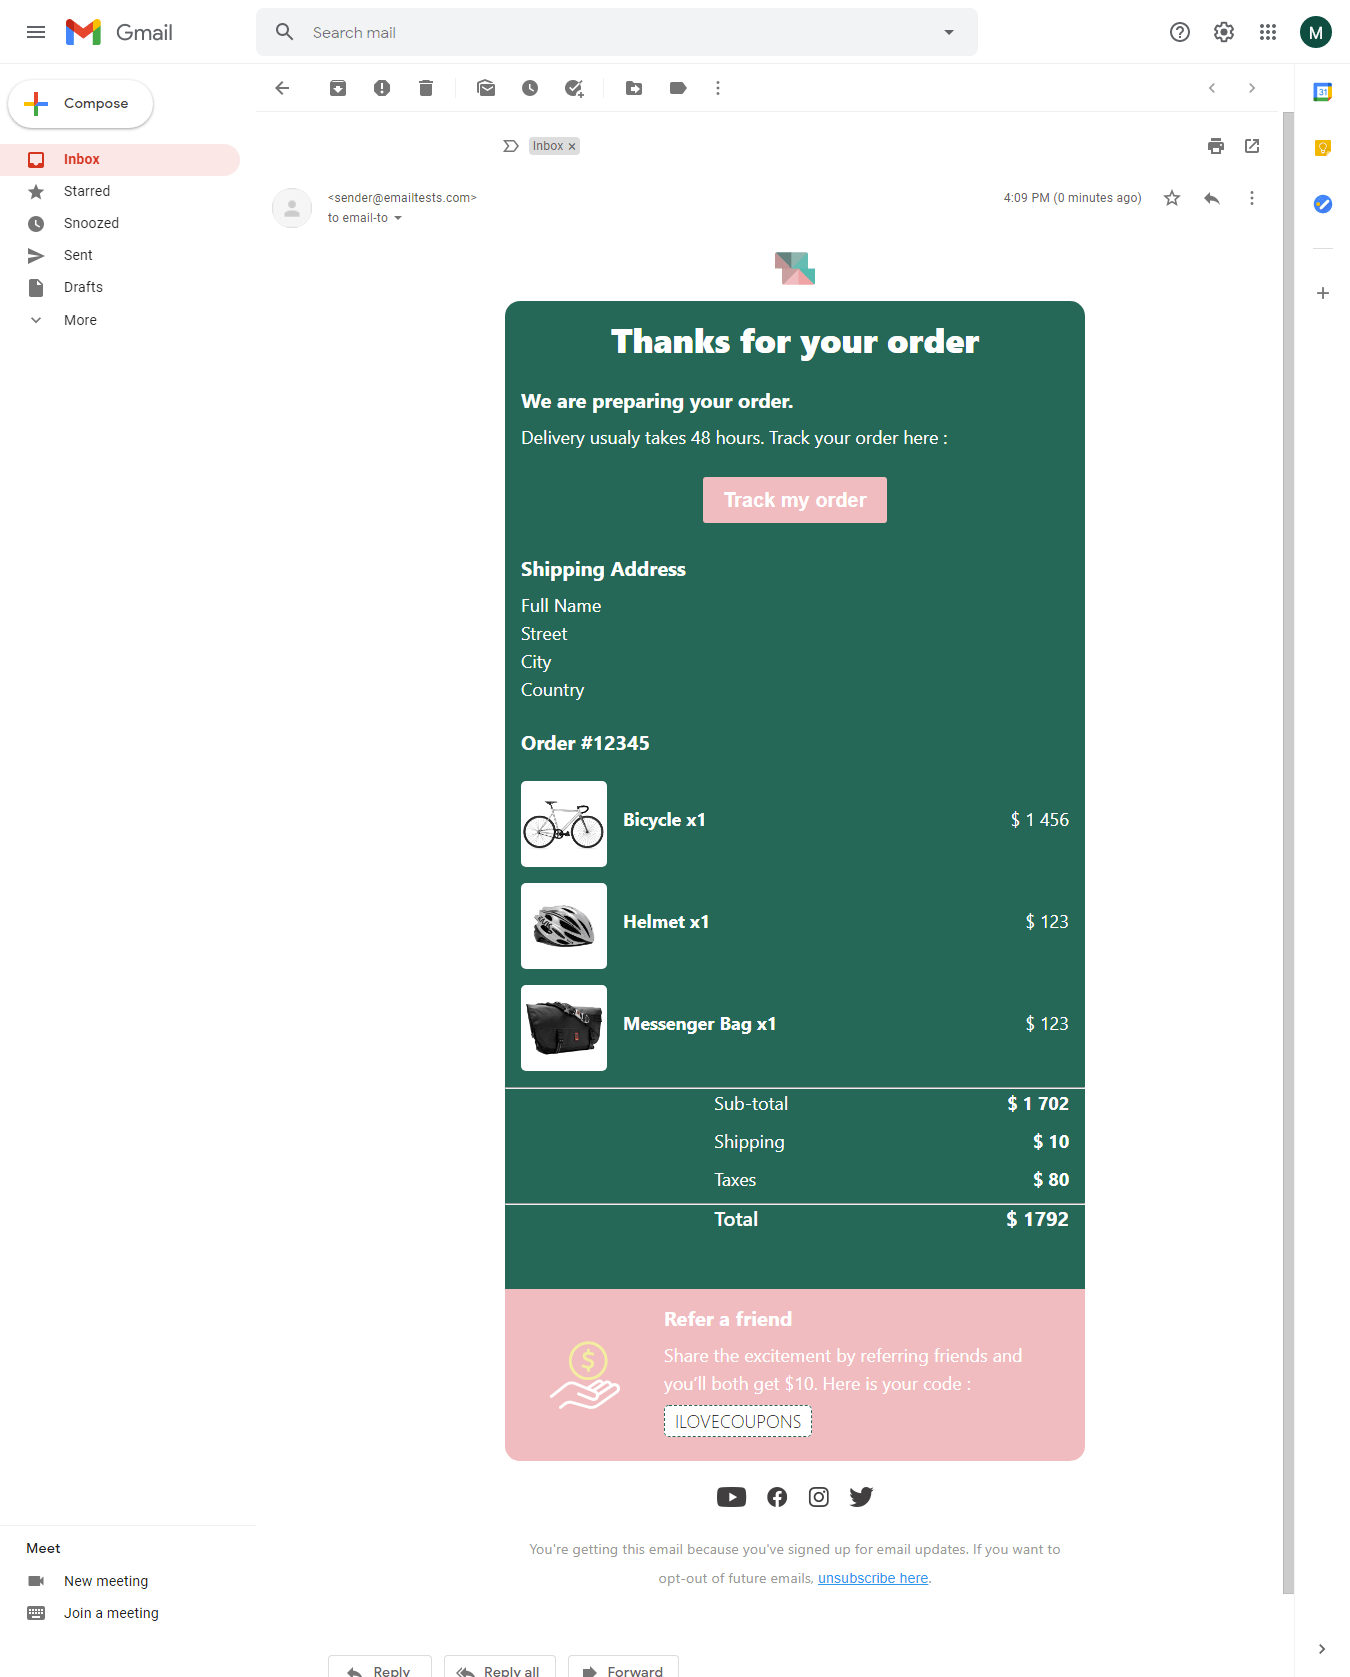 Screenshot of Colorful order confirmation email display on Gmail